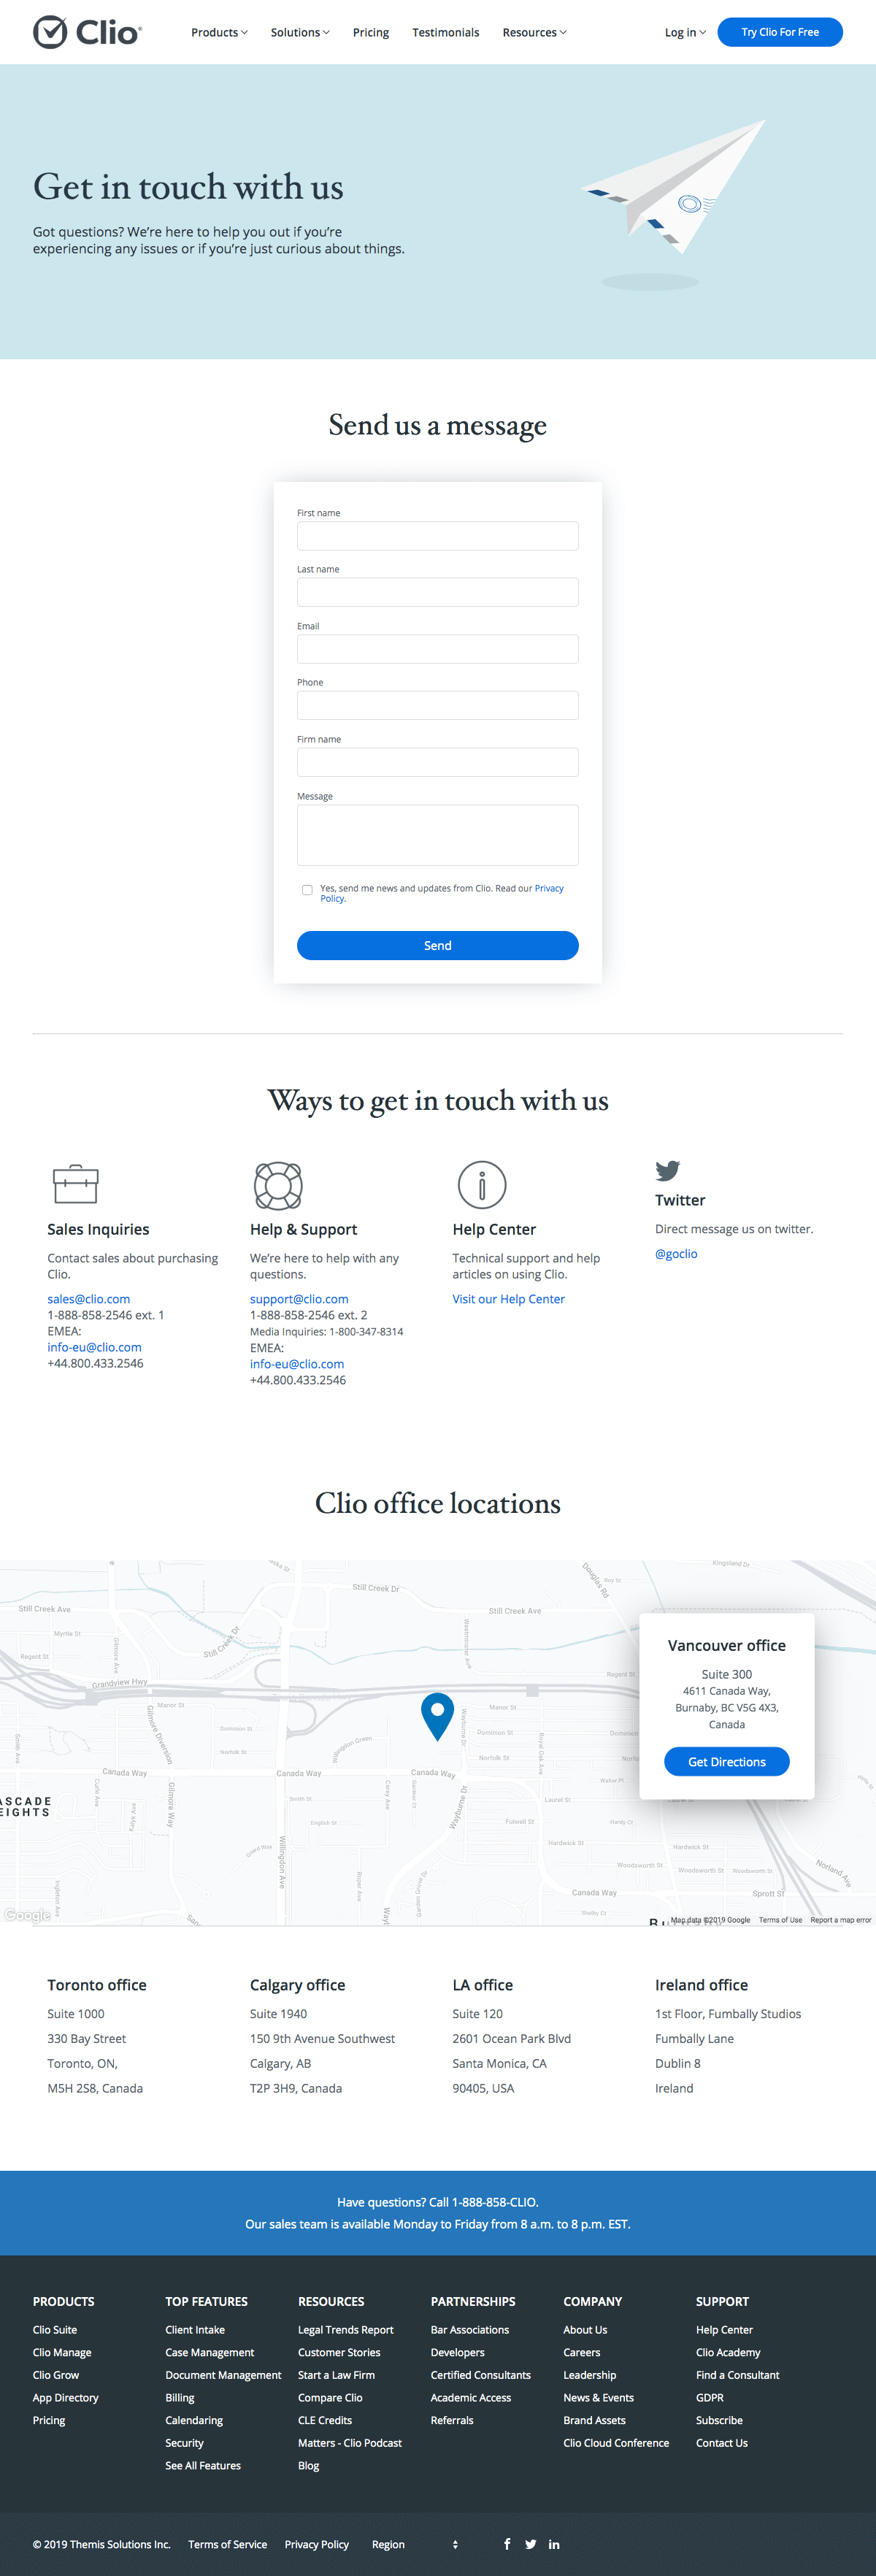 Clio - Contact page